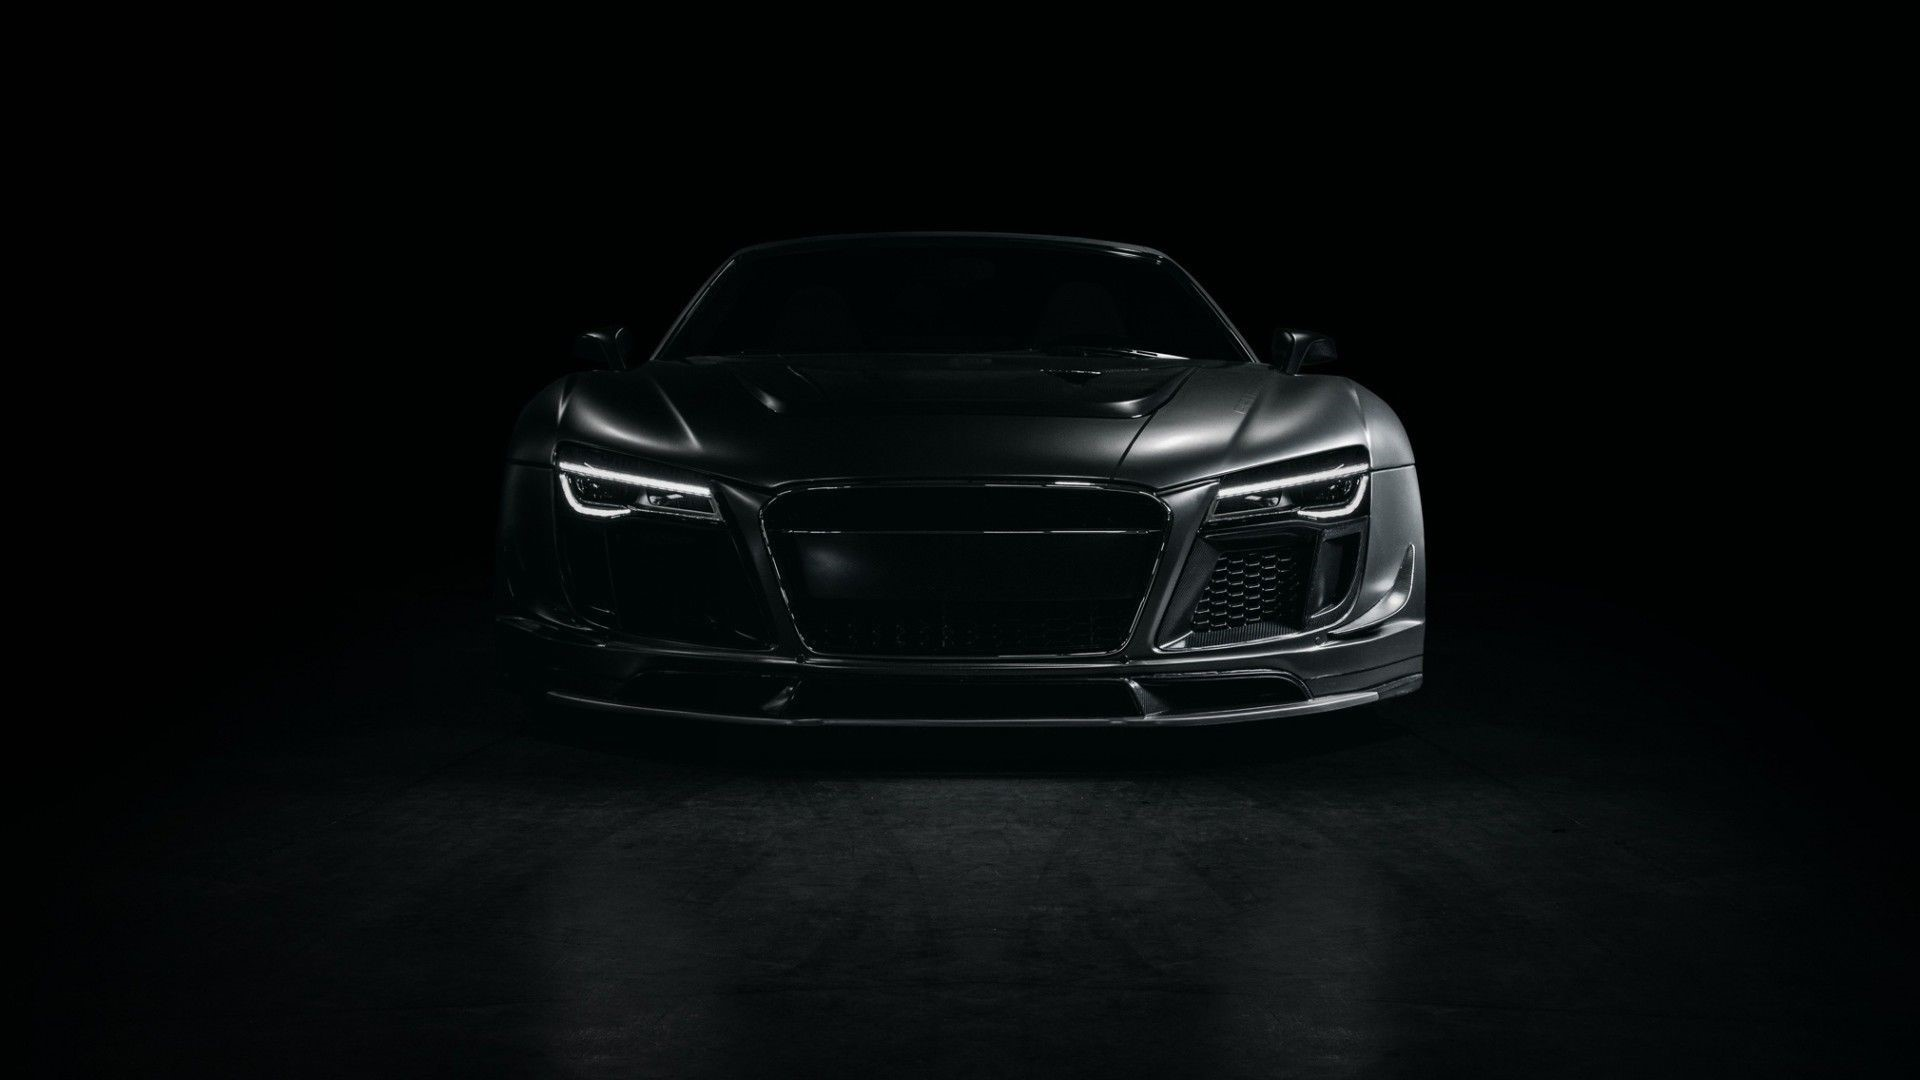 Audi R8 Front Background